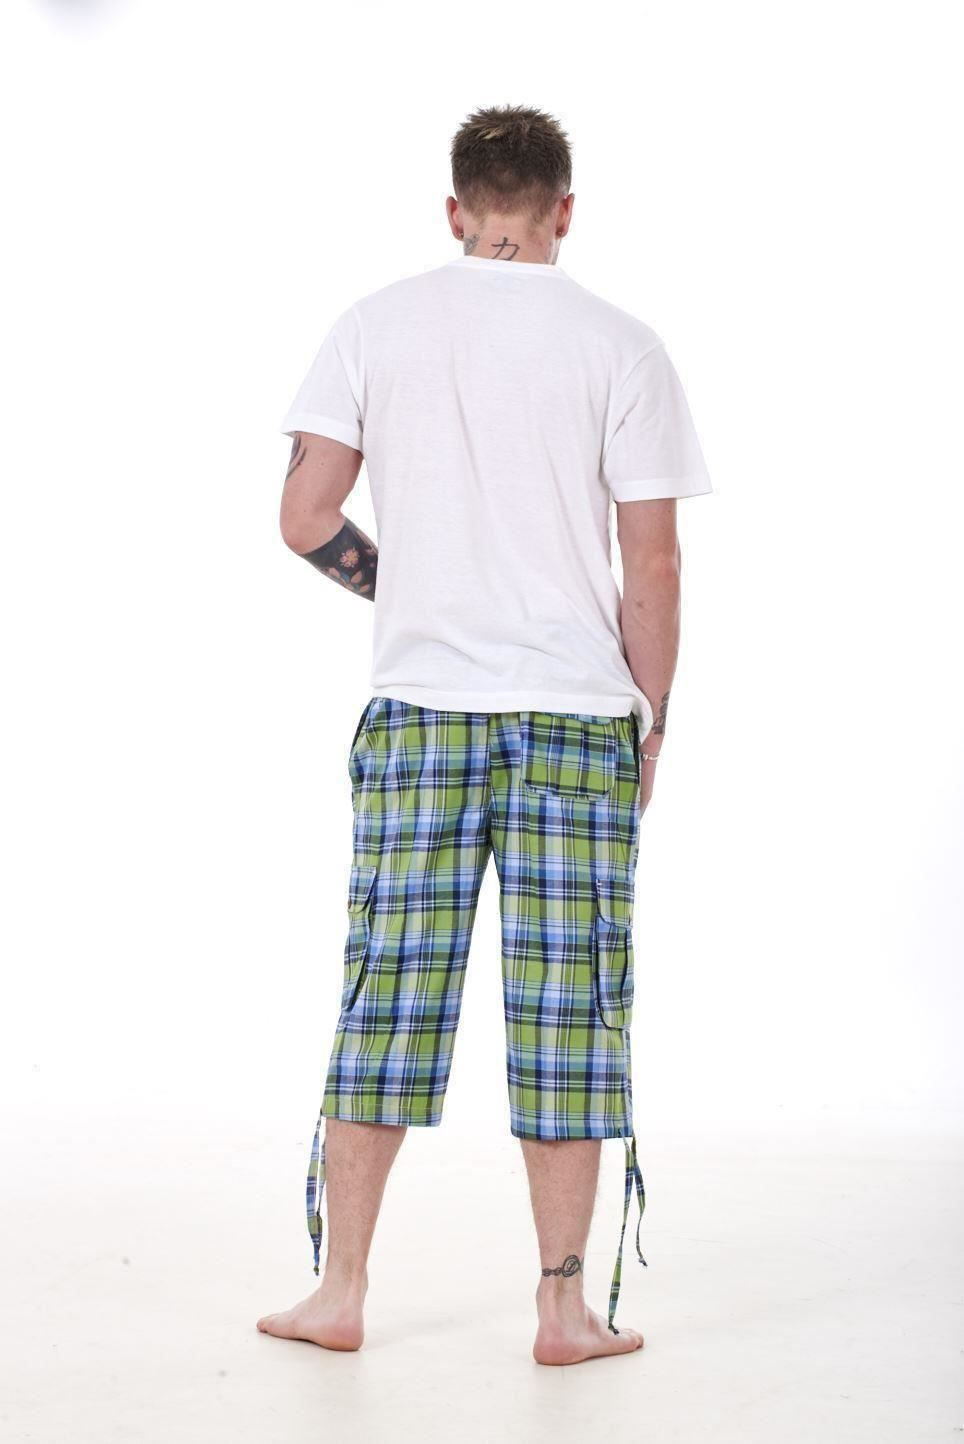 Mens-Check-Shorts-3-4-Length-by-Malay-Apparel-Cotton-Blend-Lounge-Casual-Wear thumbnail 26